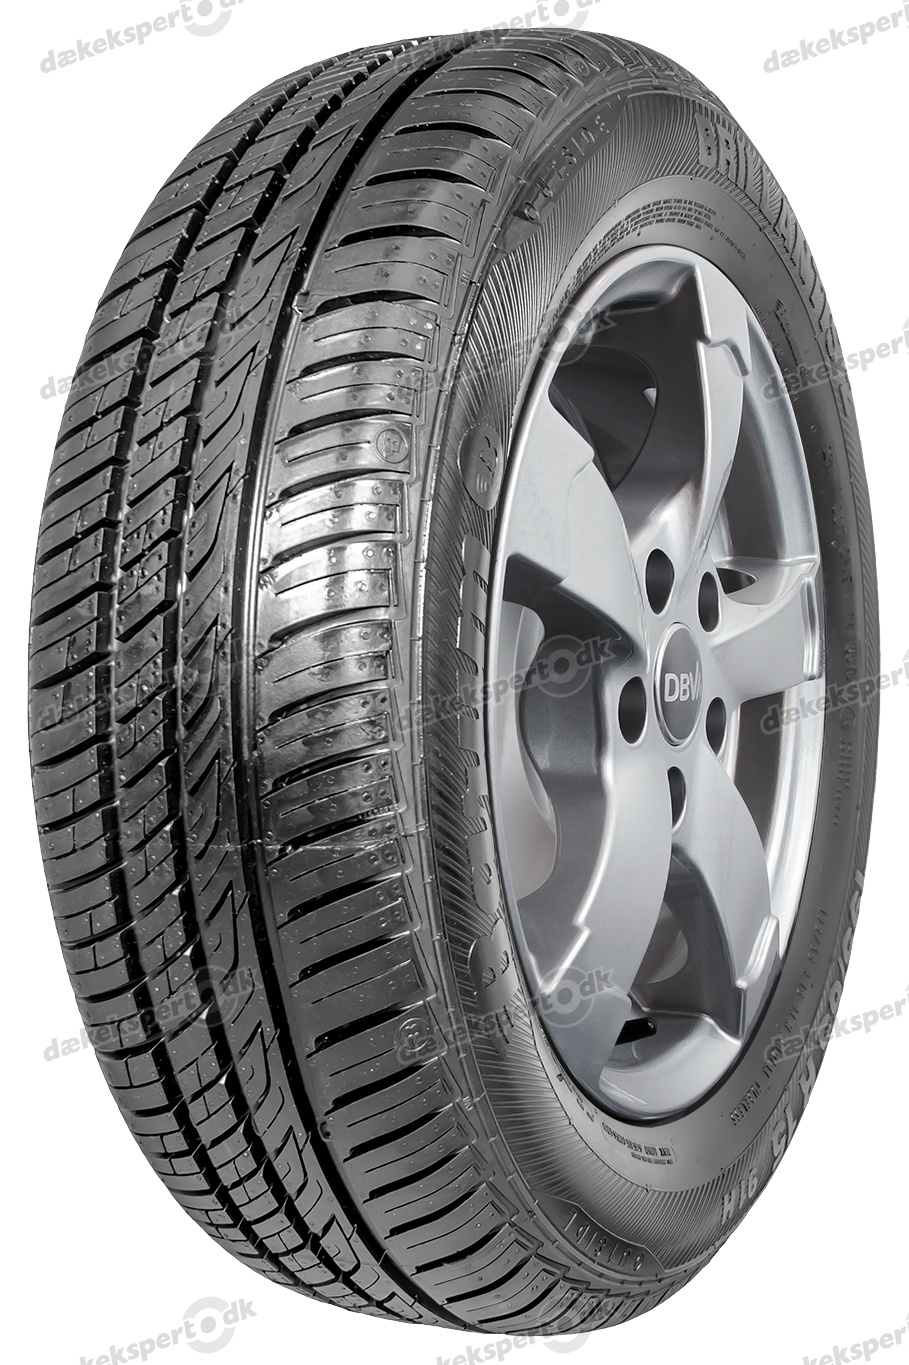 175/70 R14 88T Brillantis 2 XL  Brillantis 2 XL